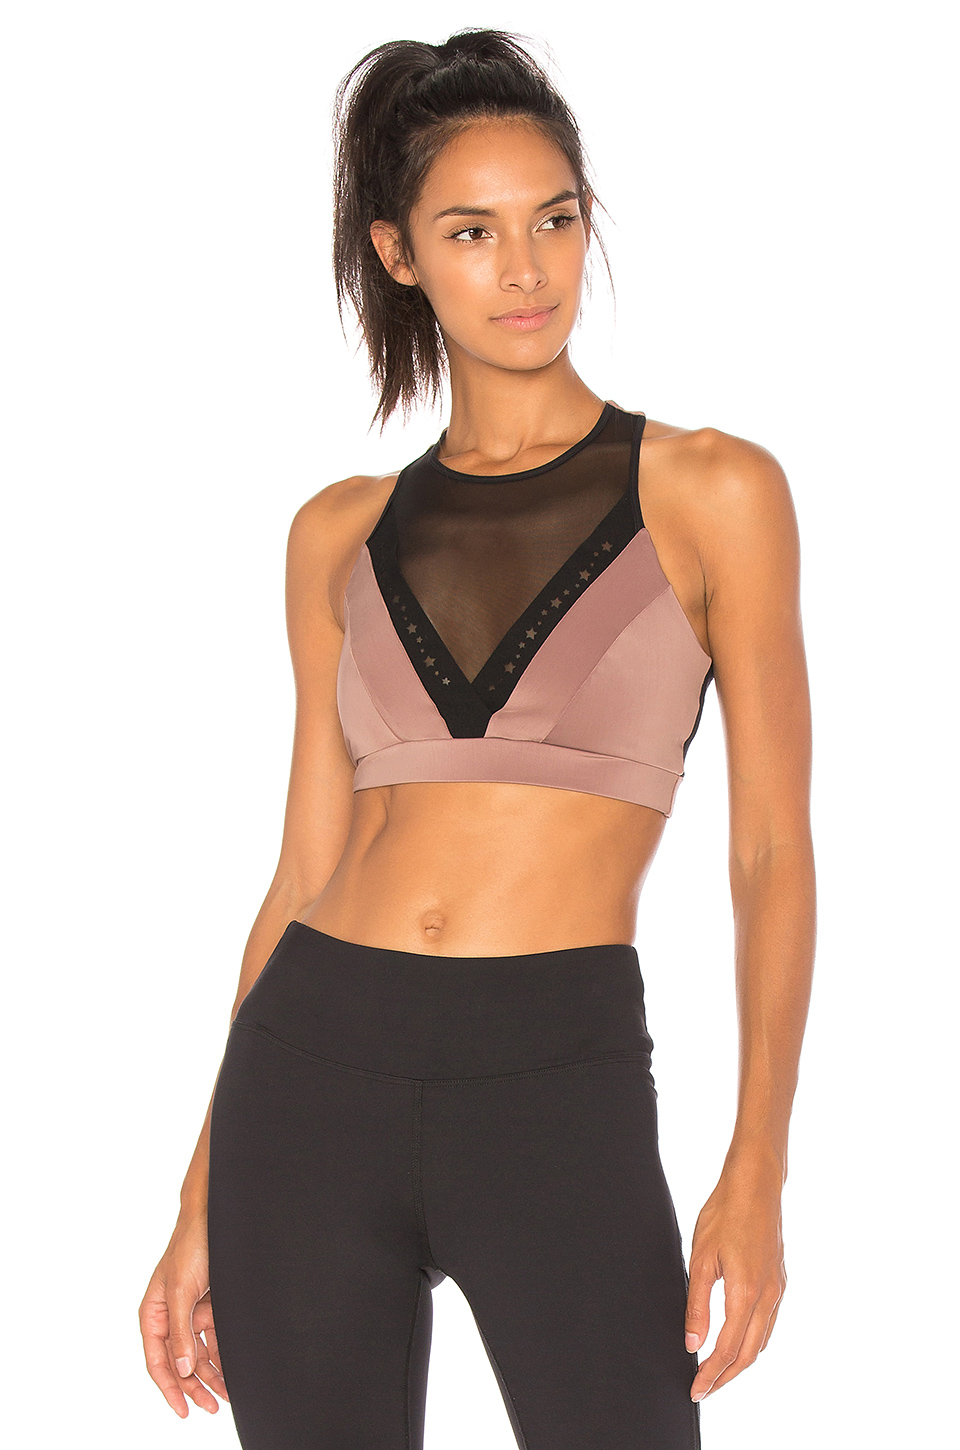 Track & Bliss Astral Sports Bra in Black & Coco